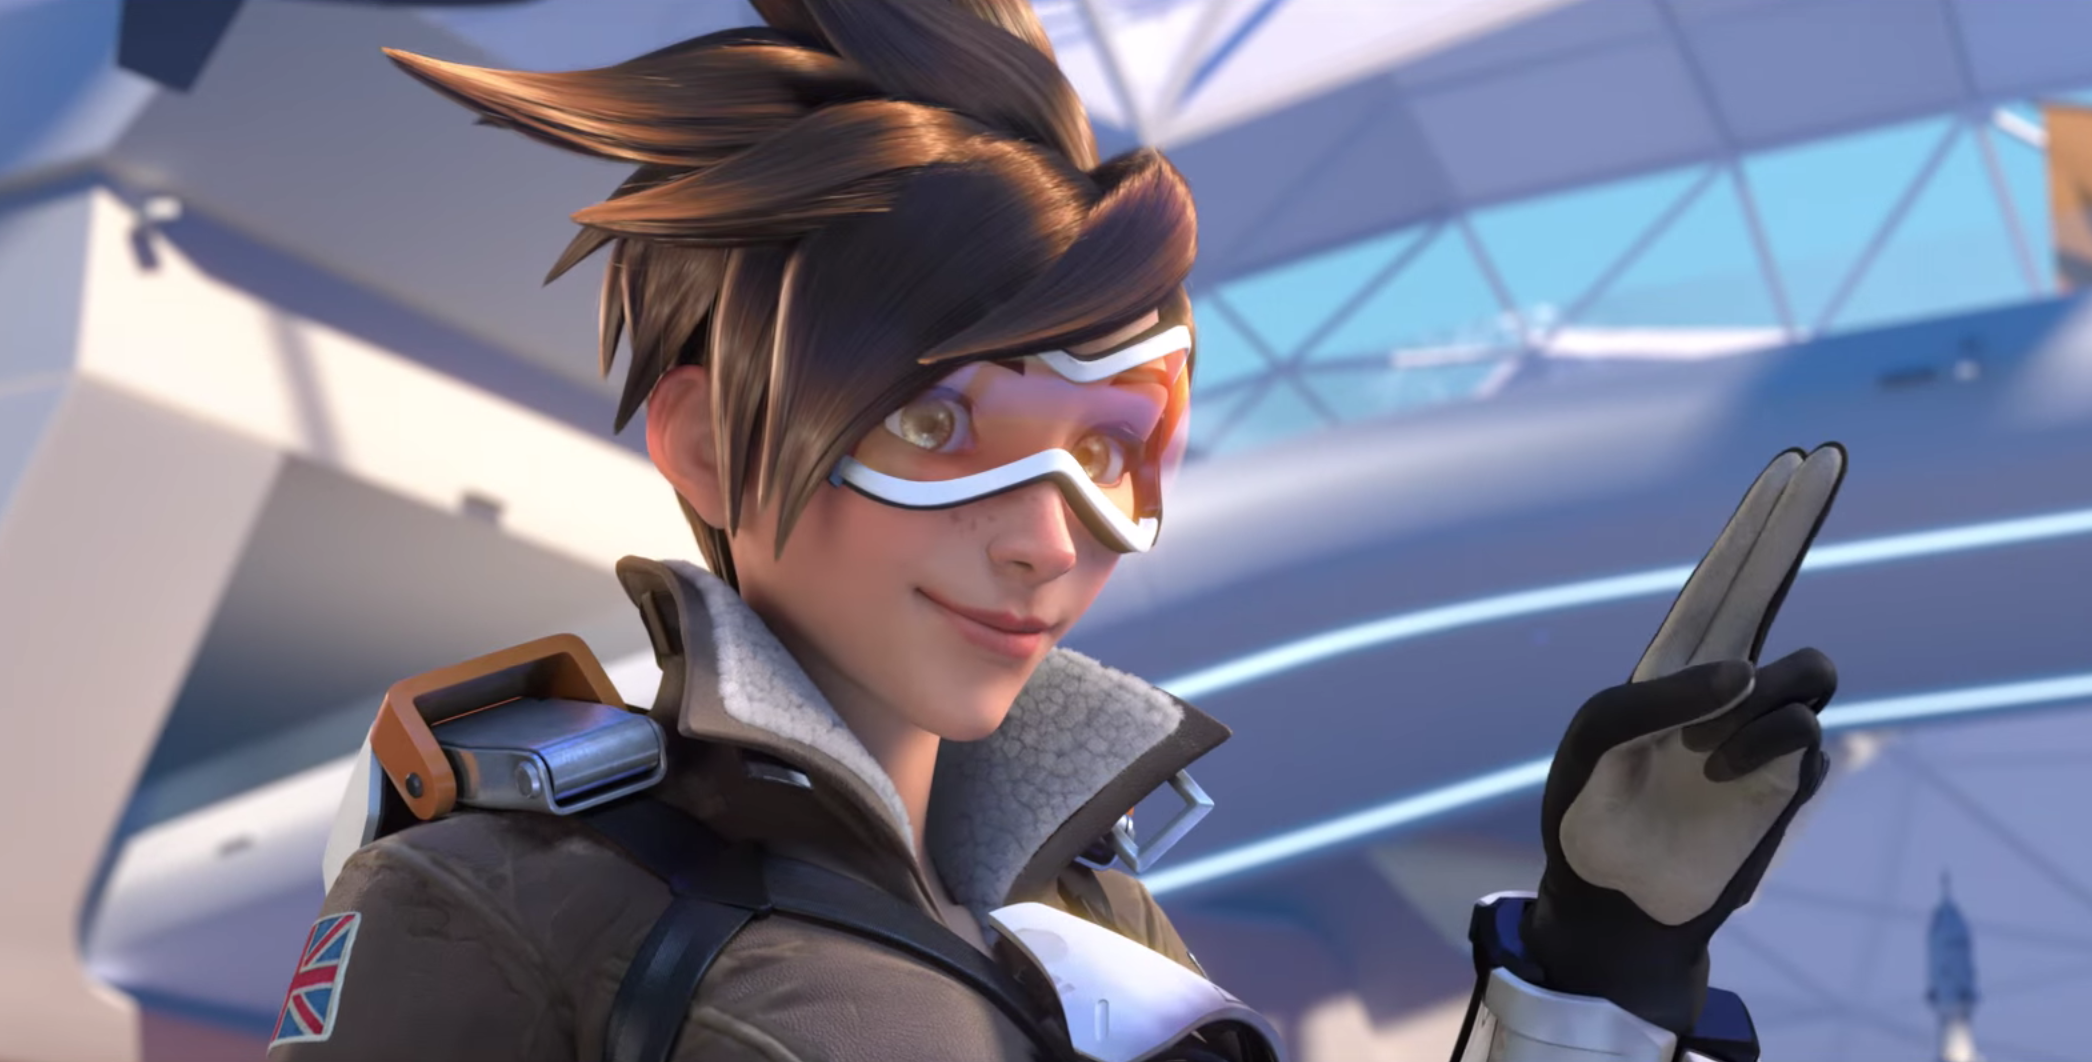 Blizzard Addresses Oversexualized Overwatch Character Pose